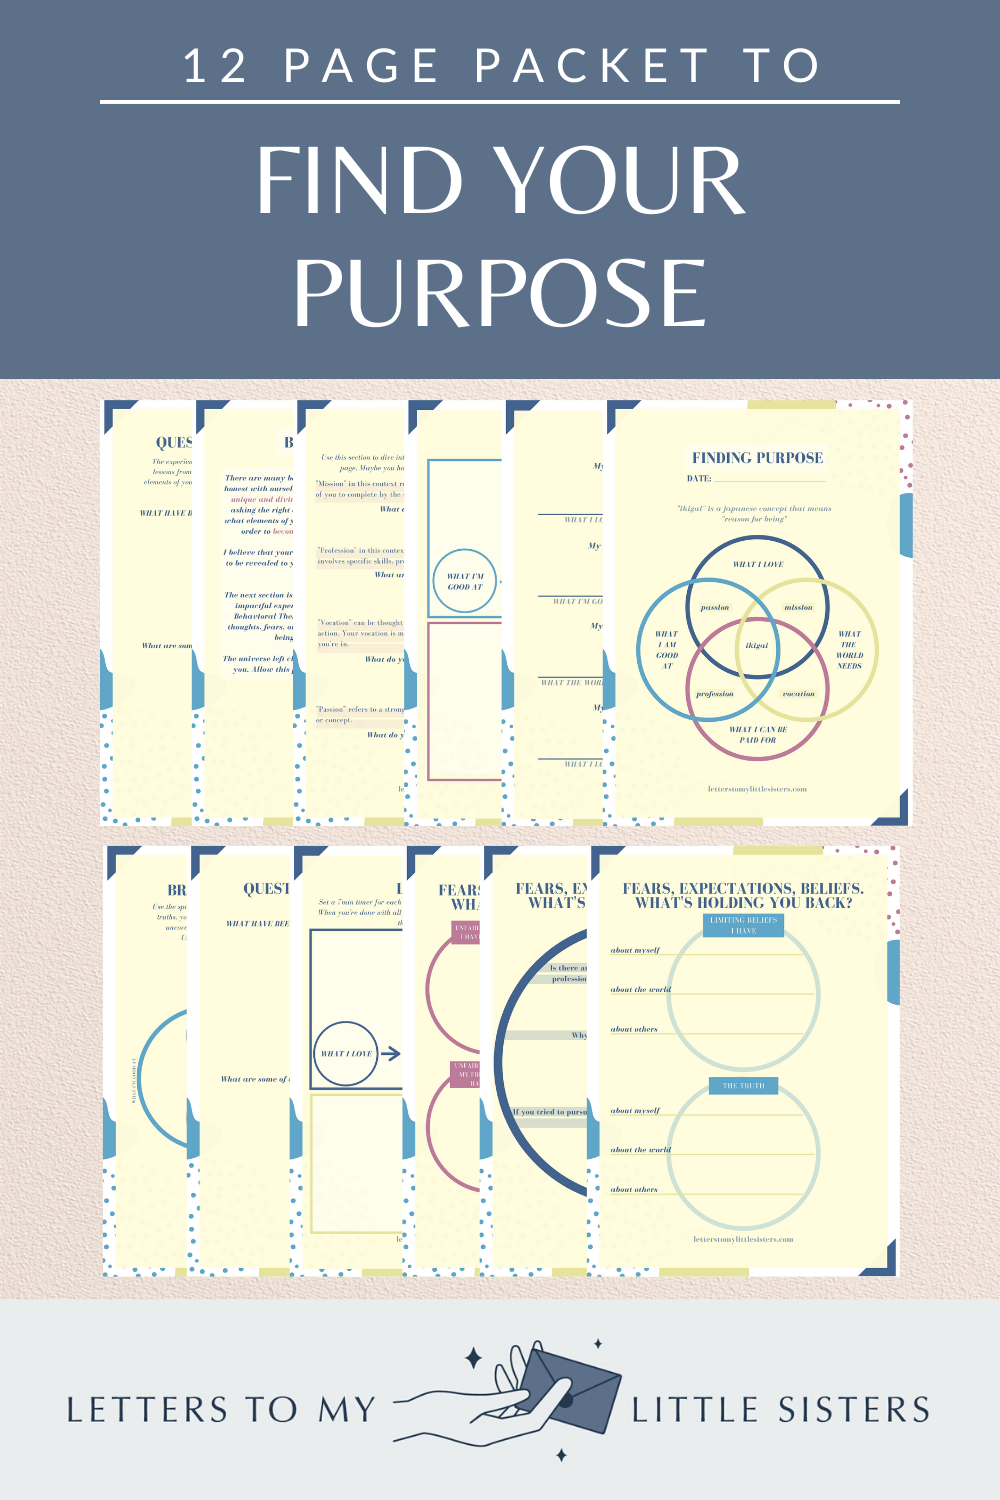 4 Questions To Find Your Purpose With Ikigai Manual Guide